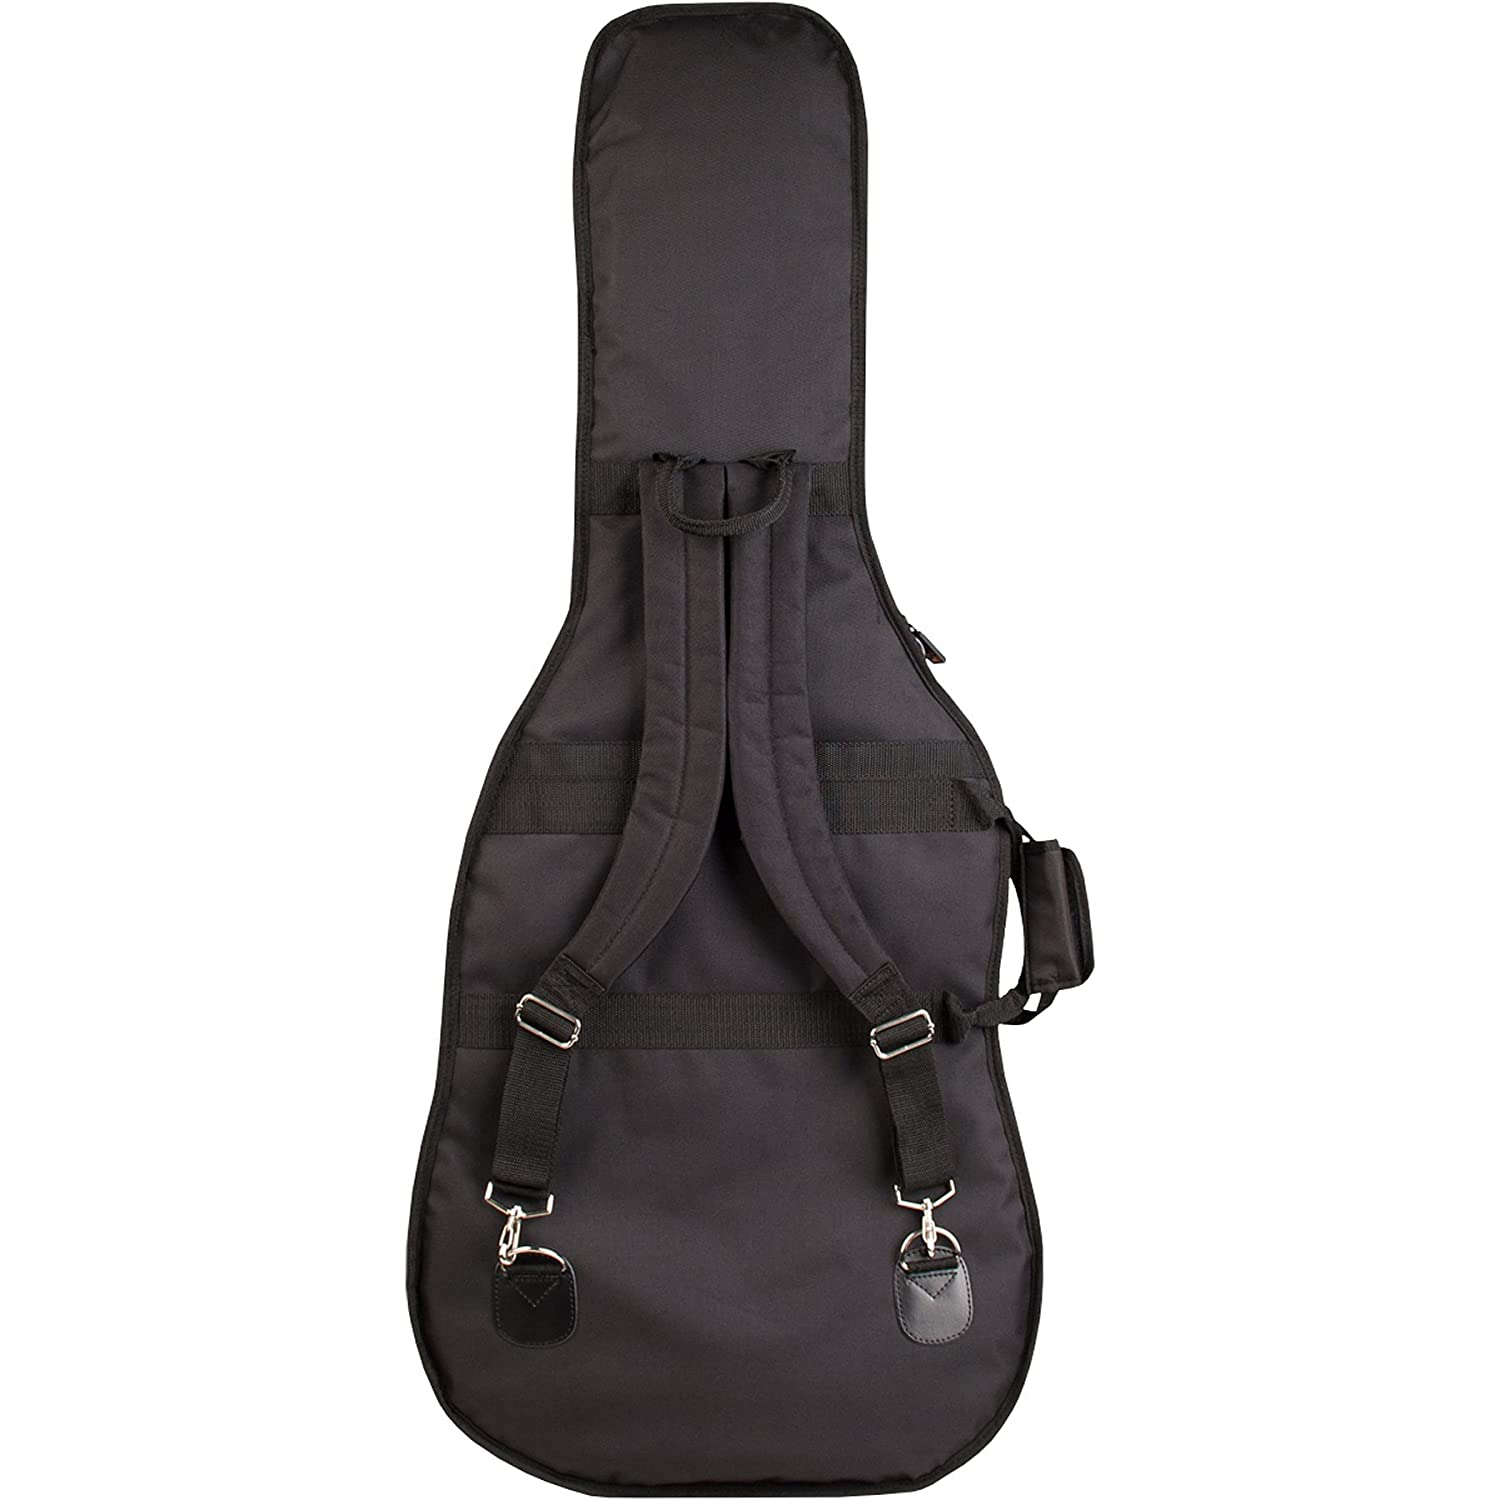 protec cf234 electric guitar gig bag gold series